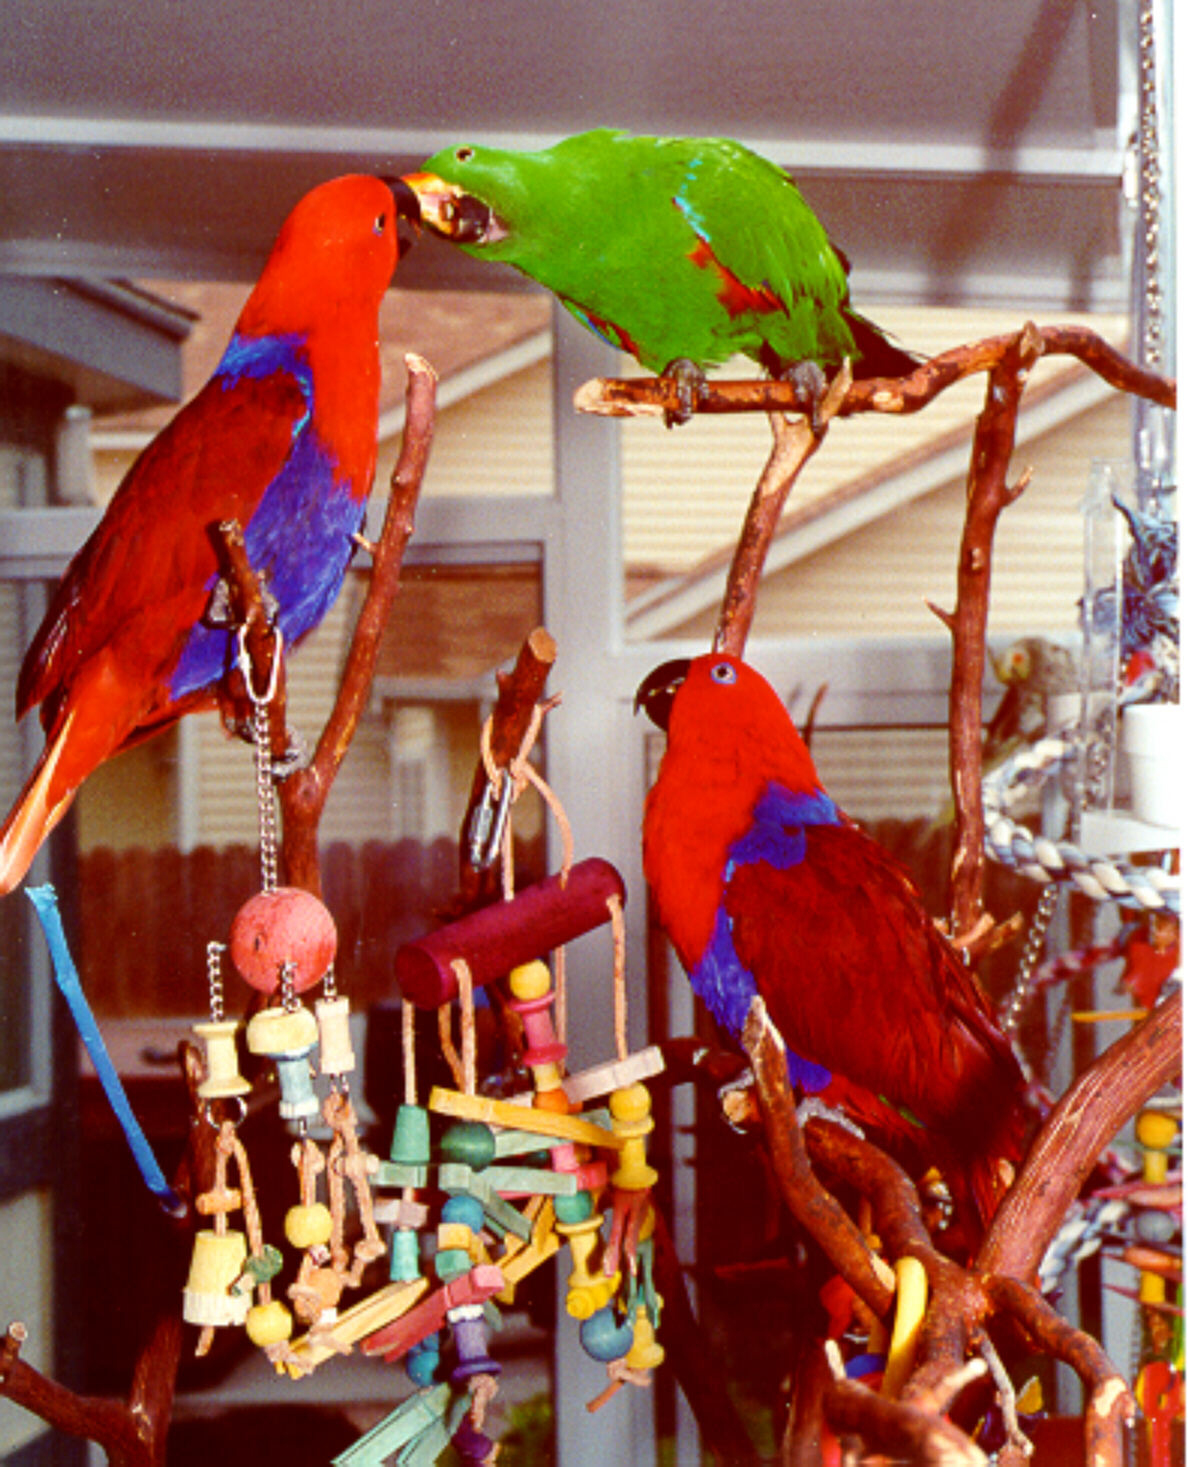 So Your Baby Eclectus is Growing Up - Now What!